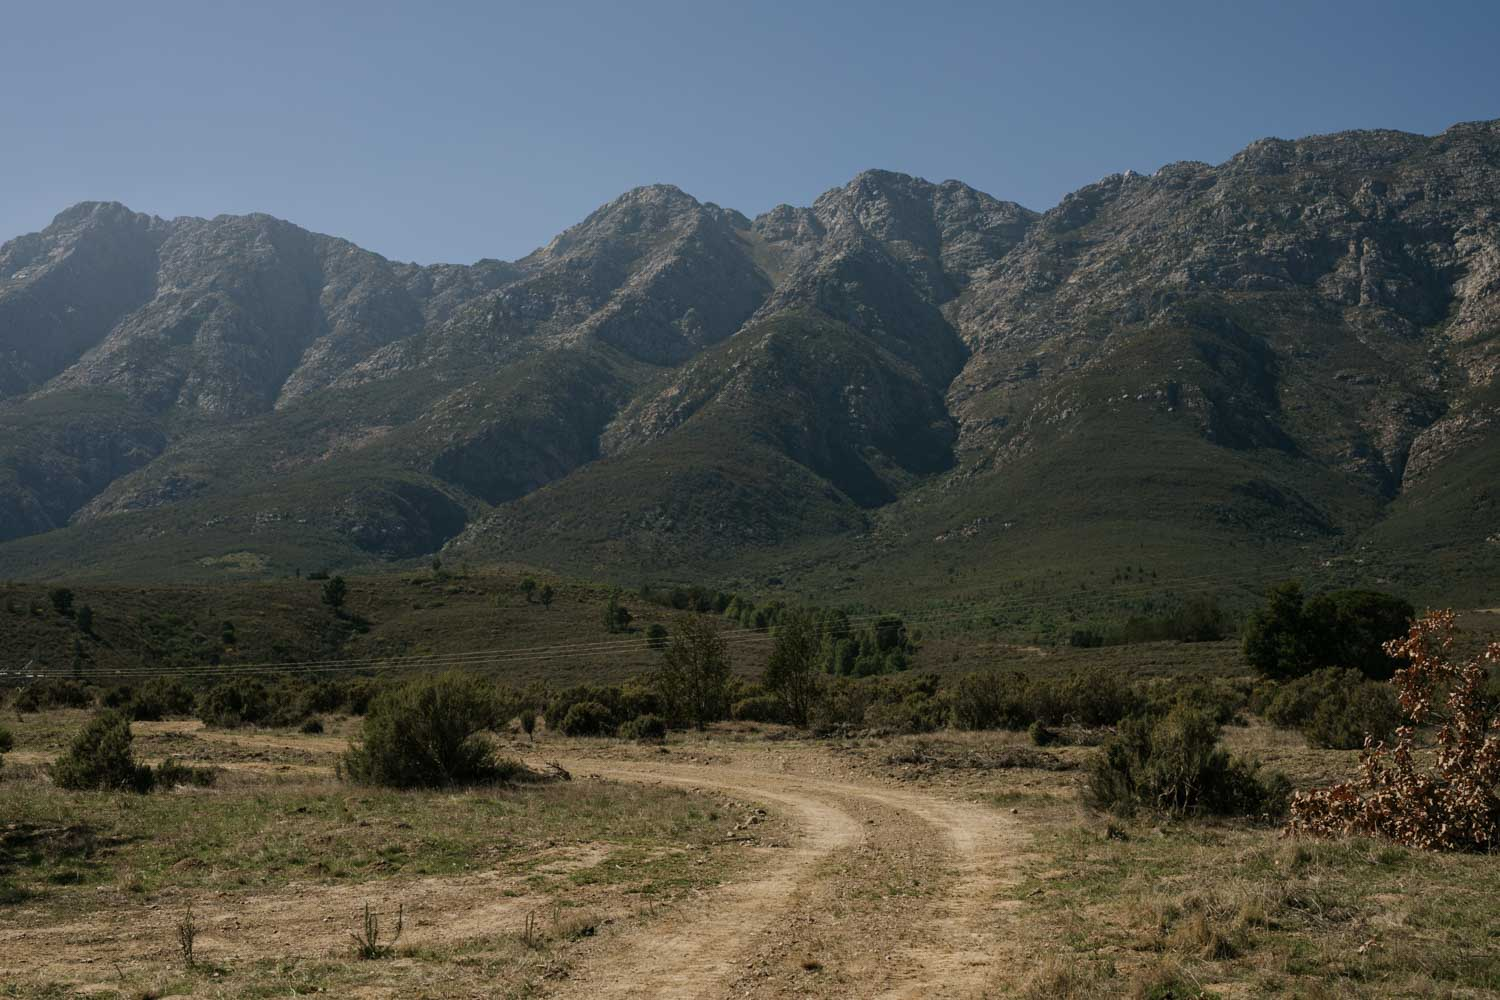 A road leading to the Tulbagh Mountain, near Cape Town